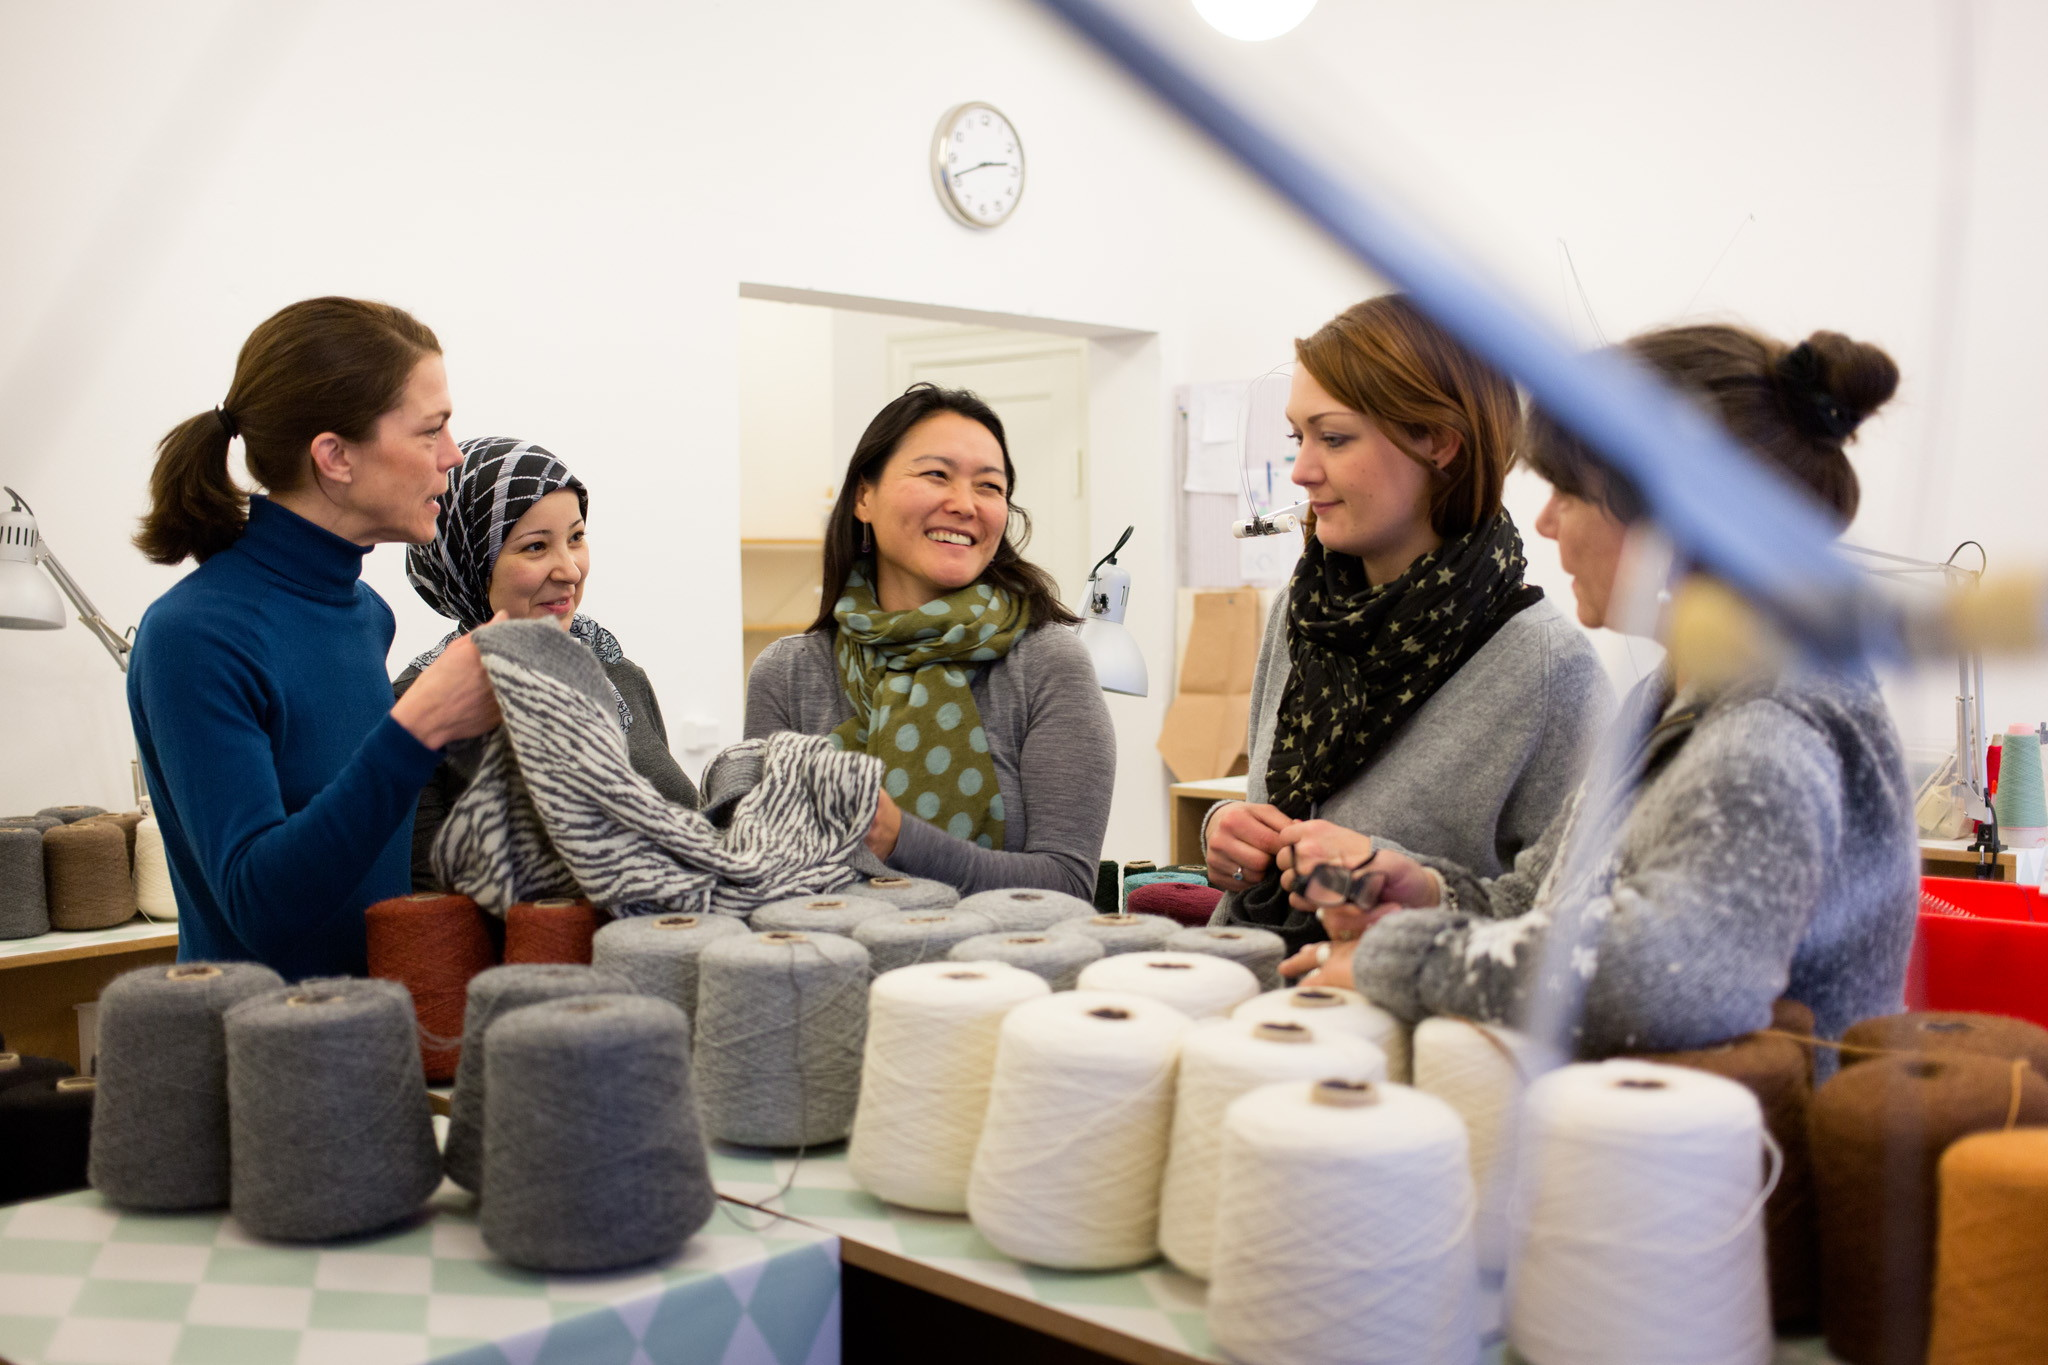 From vulnerable woman to professional knitter